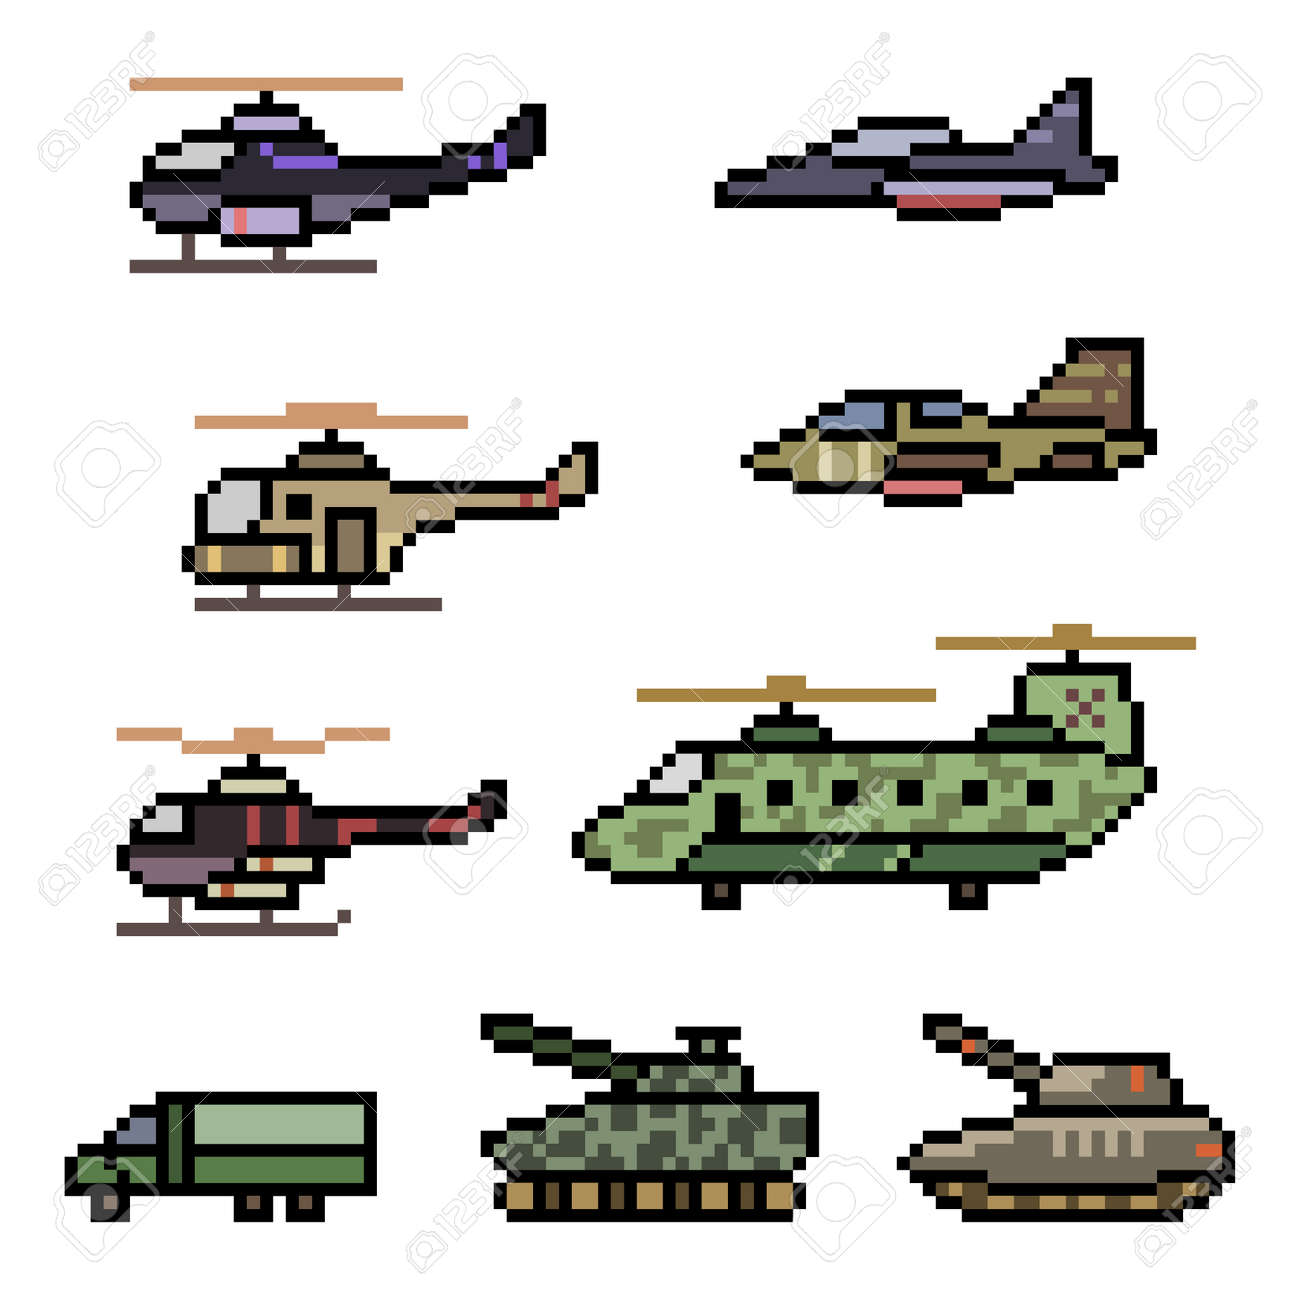 pixel art of military vehicle force - 169439818